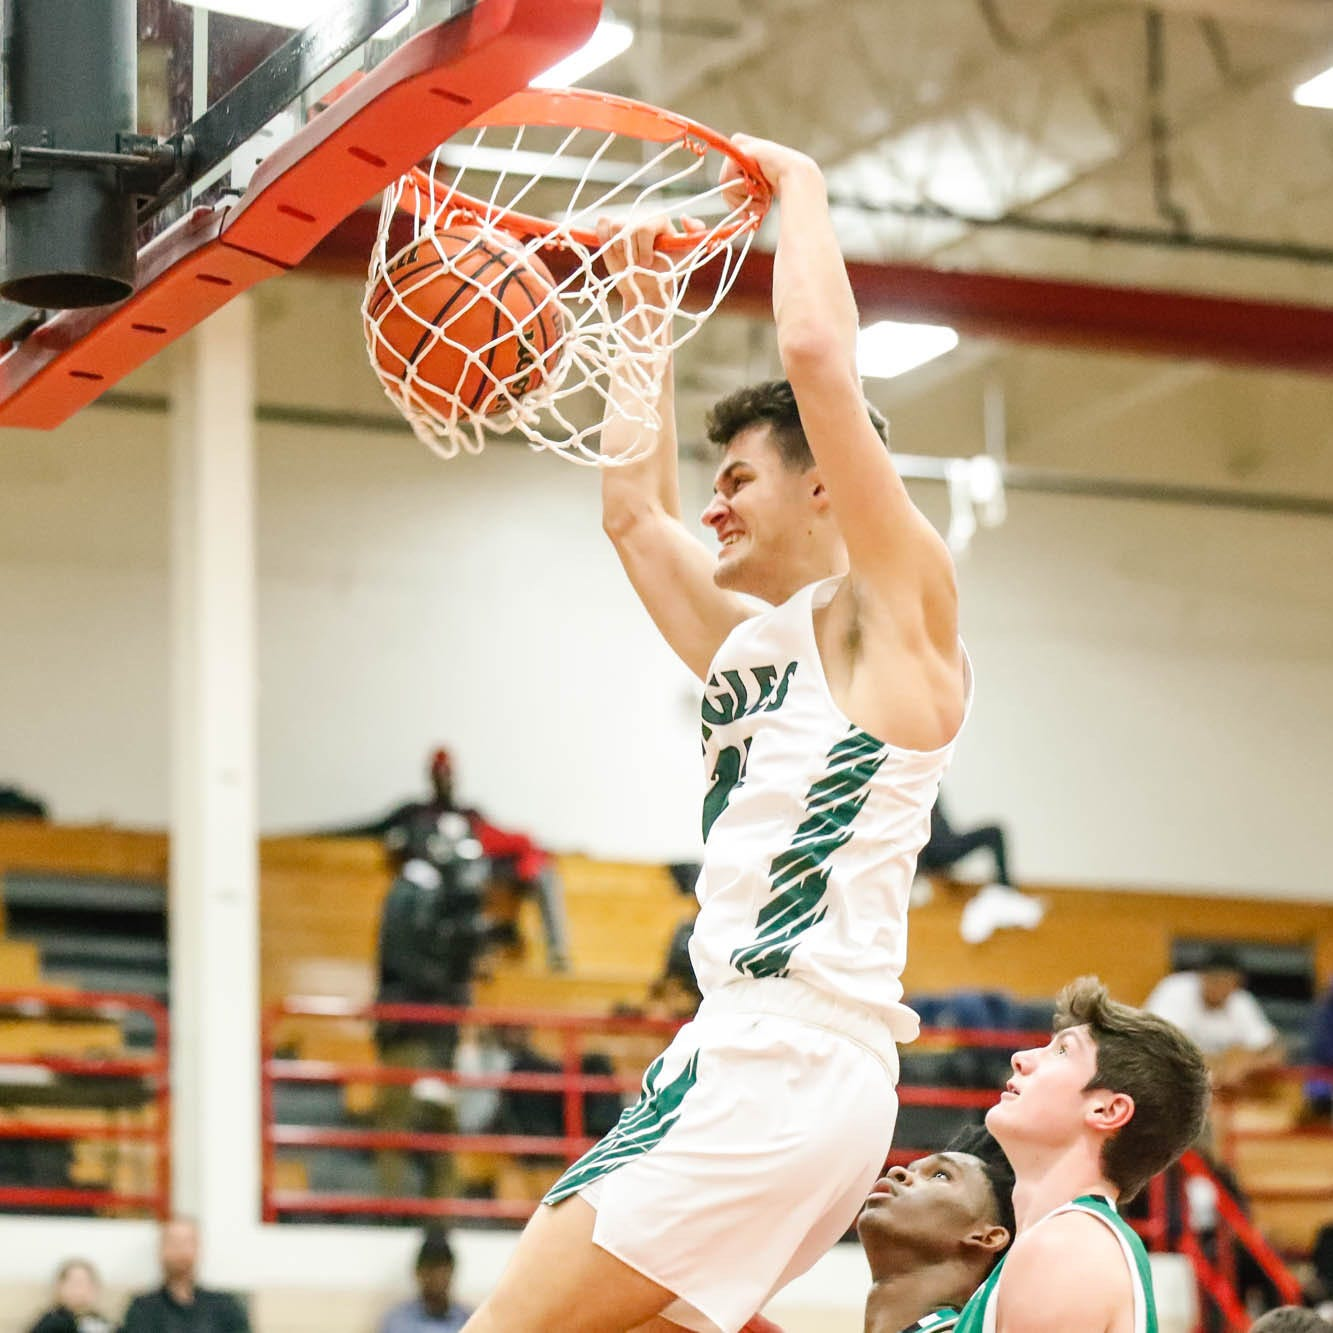 Nathan Childress averaged 14.5 points, 6.9 rebounds and 2.7 assists as a senior for Zionsville.